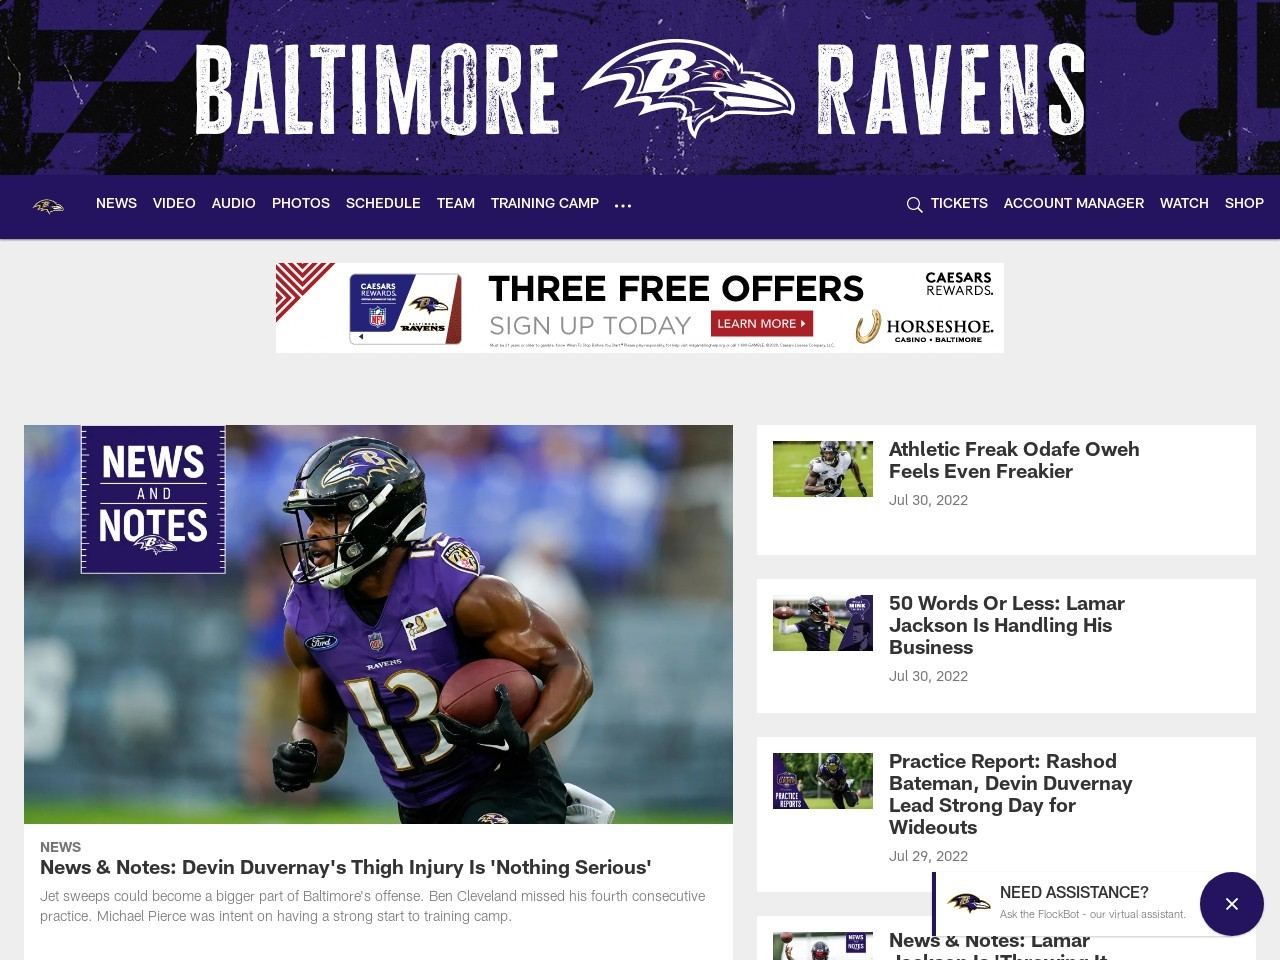 Late For Work 8/21: Ravens Fans More Loyal Than Steelers Fans